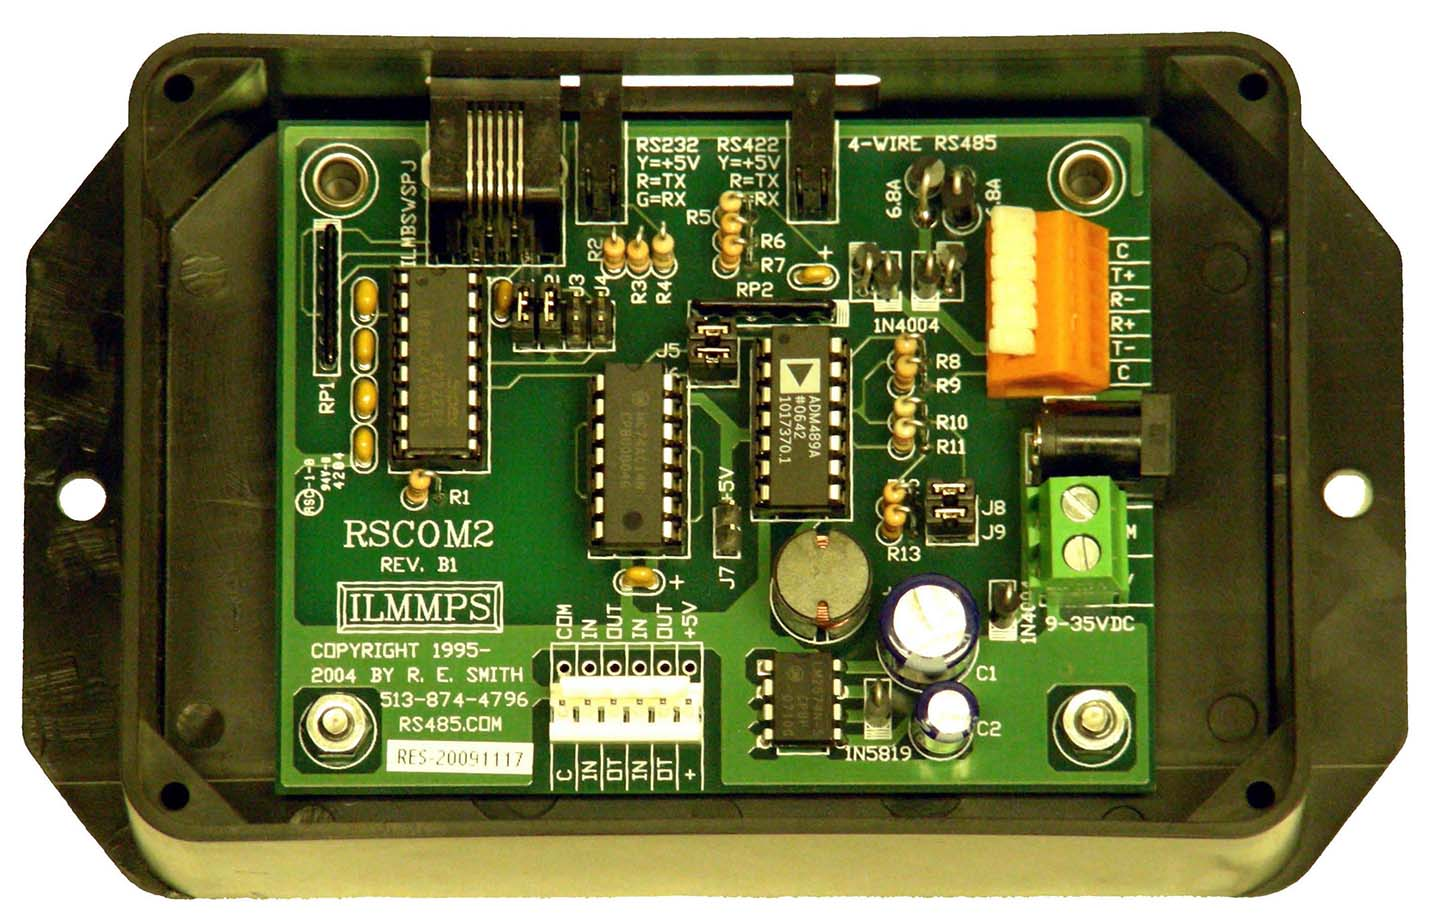 Rscom2 Rs232 Rs422 Rs485 Using Rts And Ttl To Converter Network For You